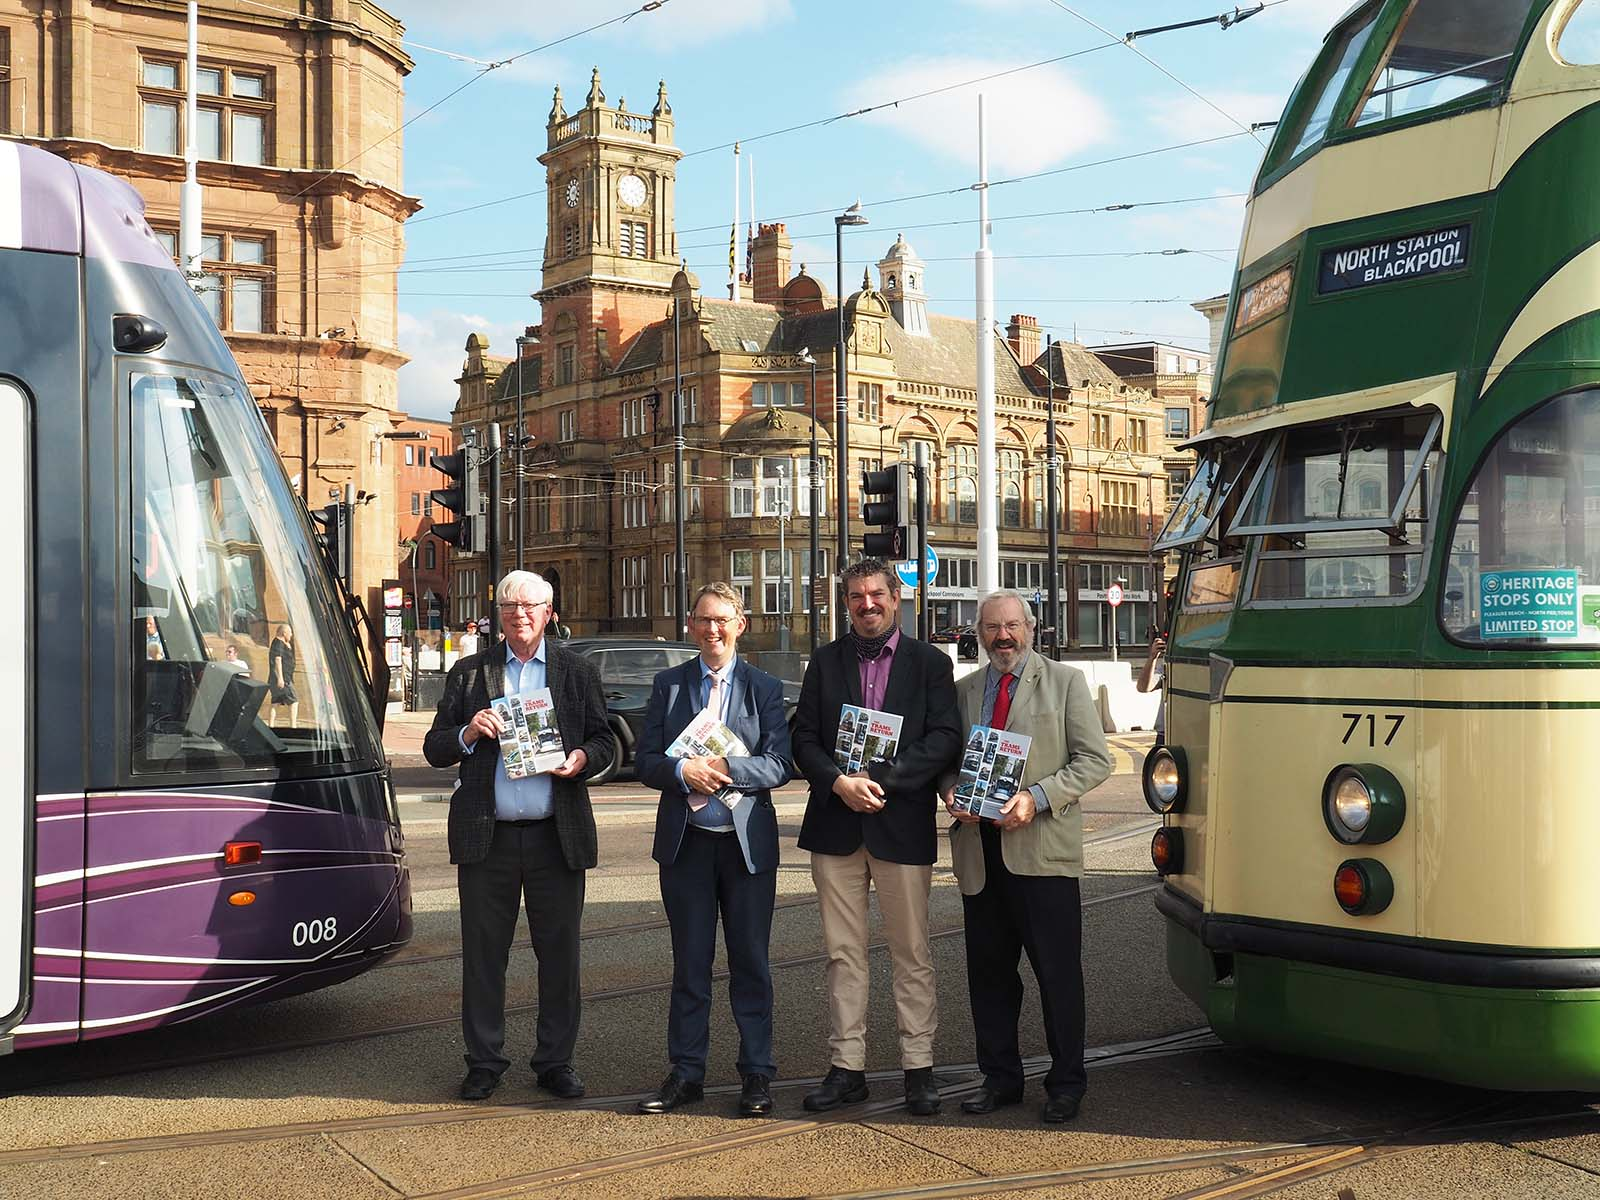 MP Launches 'The Trams Return' Book